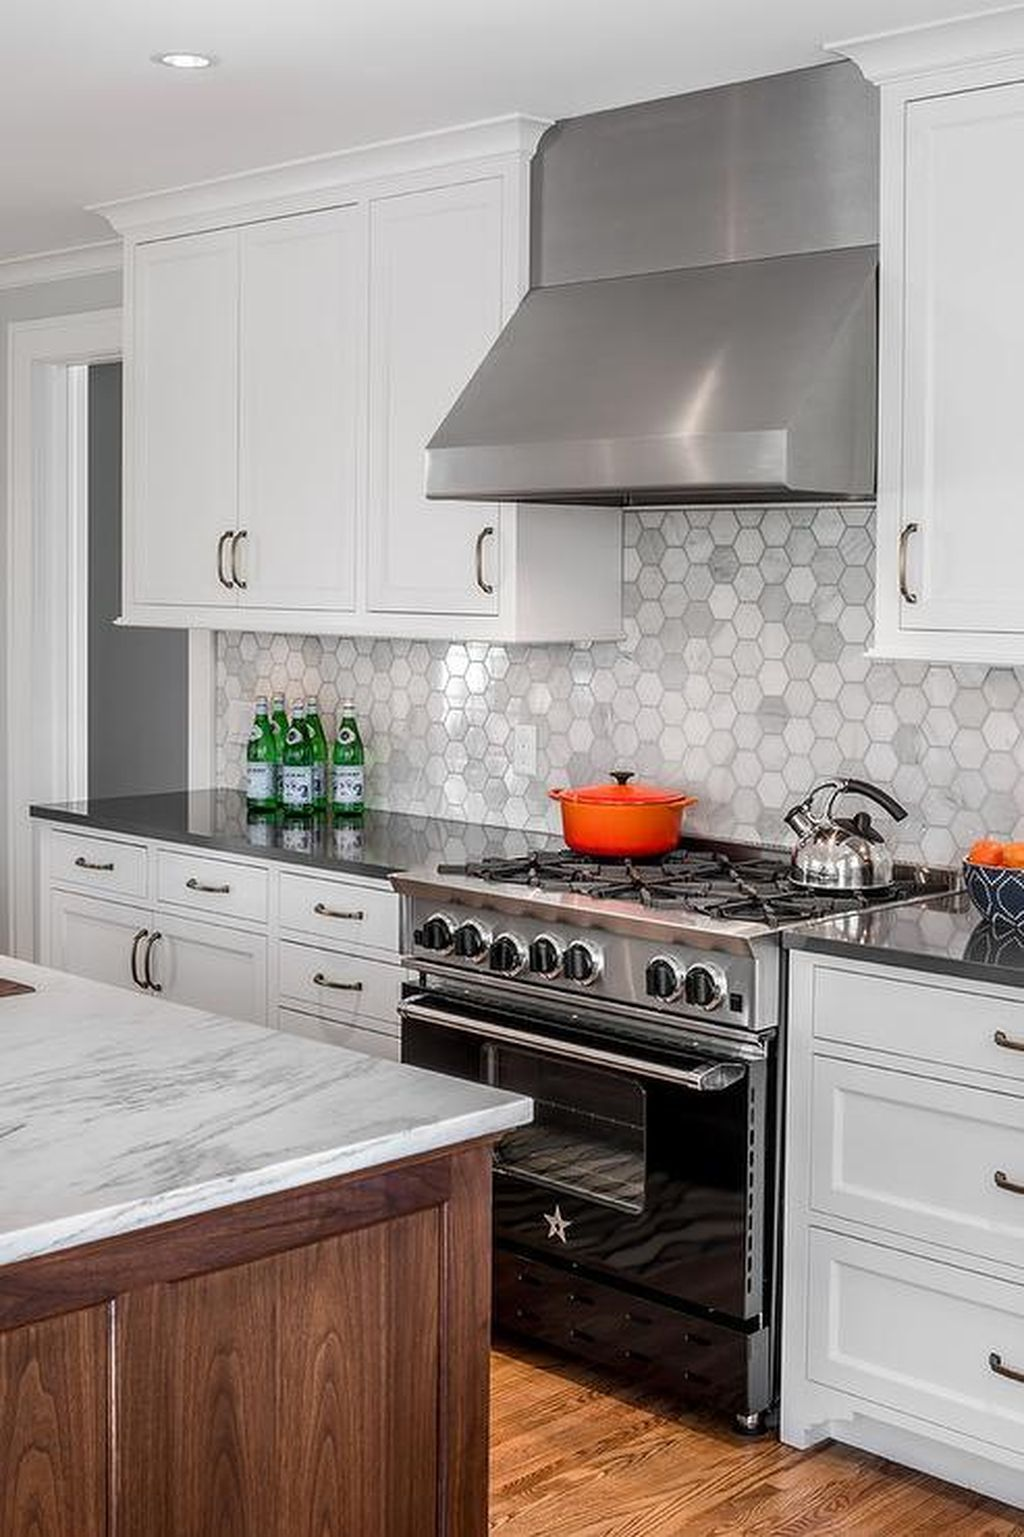 Kitchen make overs  Pin by Chic Kitchen Make Overs on Top Kitchen Ideas  Pinterest